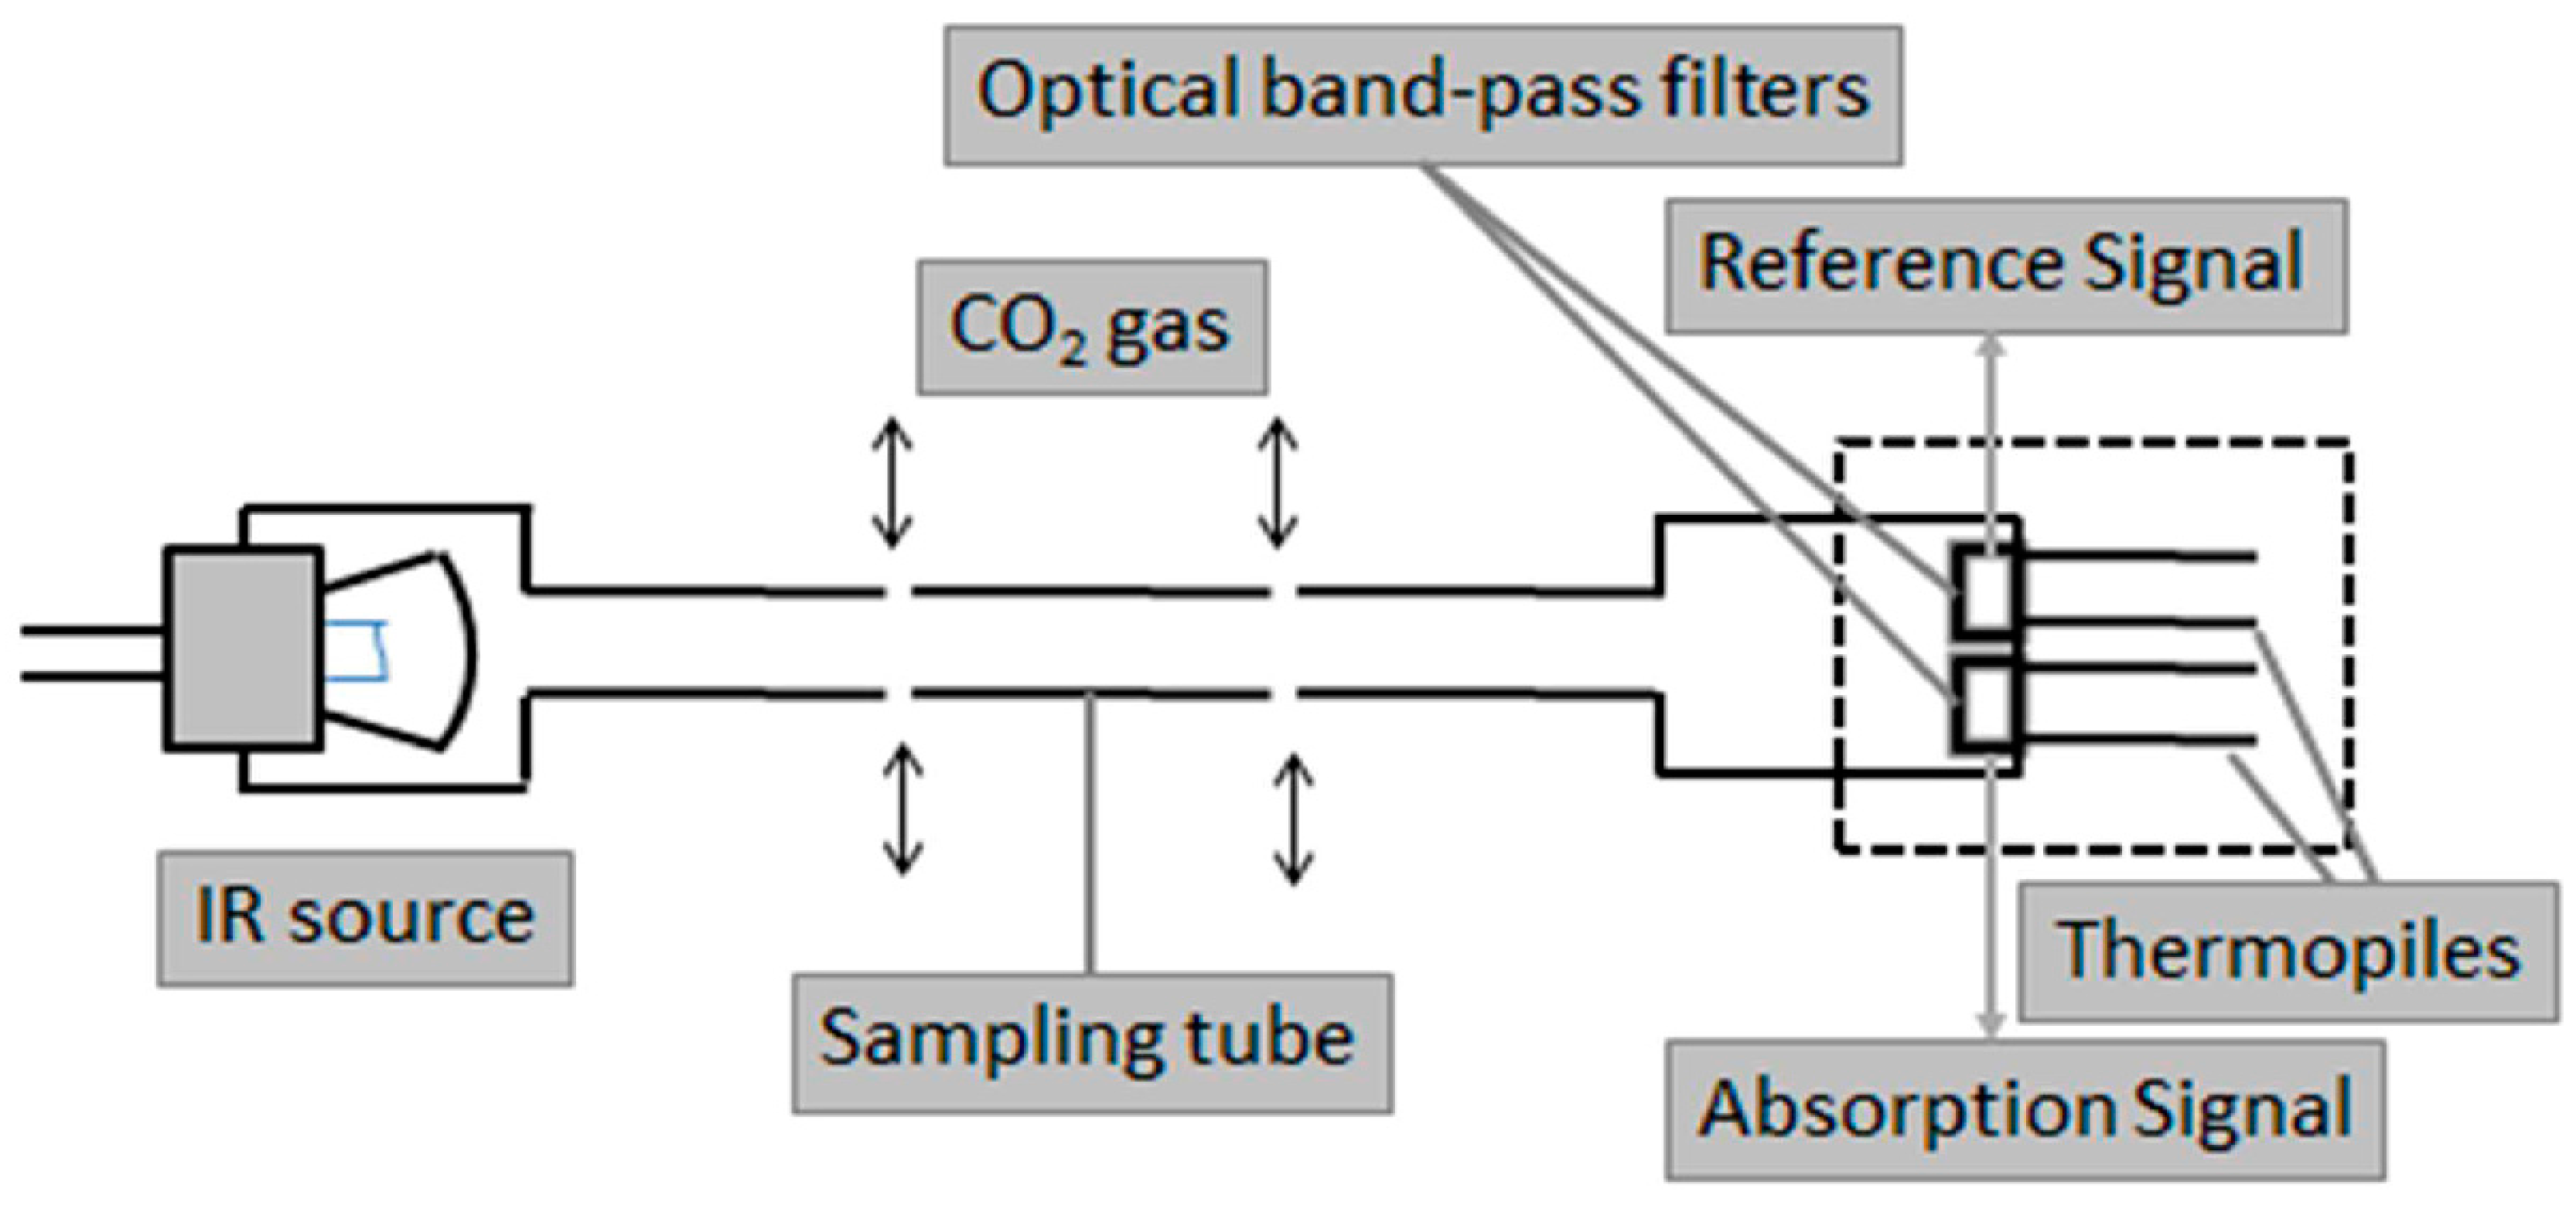 Diagram Of Carbon Dioxide Laser Trusted Wiring Diagrams Co2 Sensor Absorption Schemes Sink